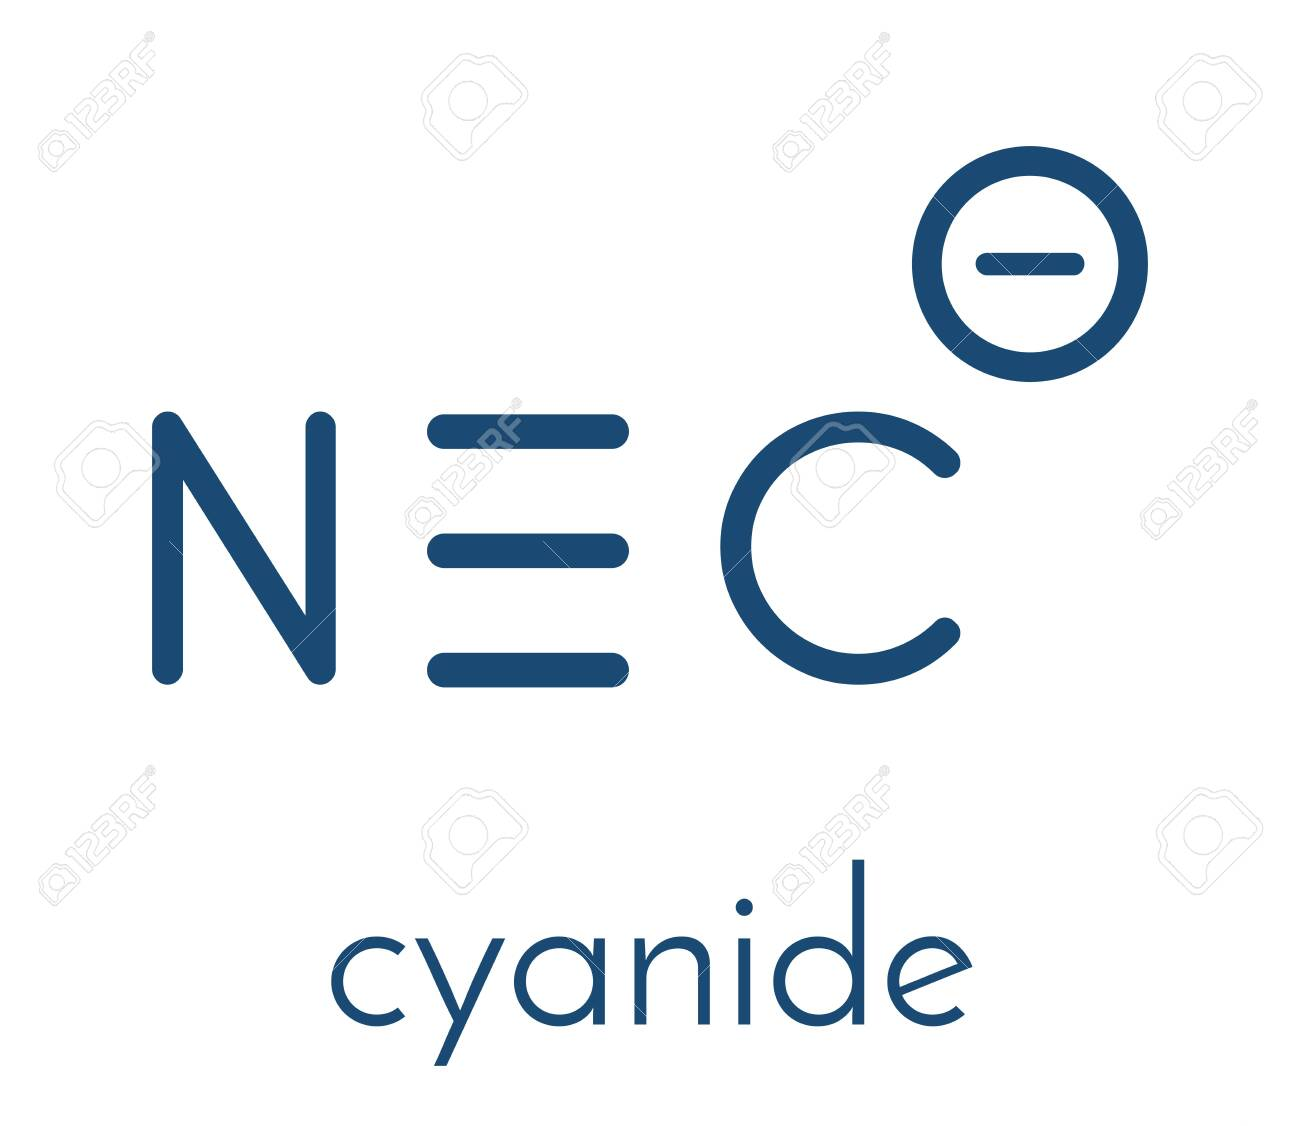 Cyanide anion, chemical structure. Cyanides are toxic, due to inhibition of the enzyme cytochrome c oxidase. Skeletal formula. - 149475021